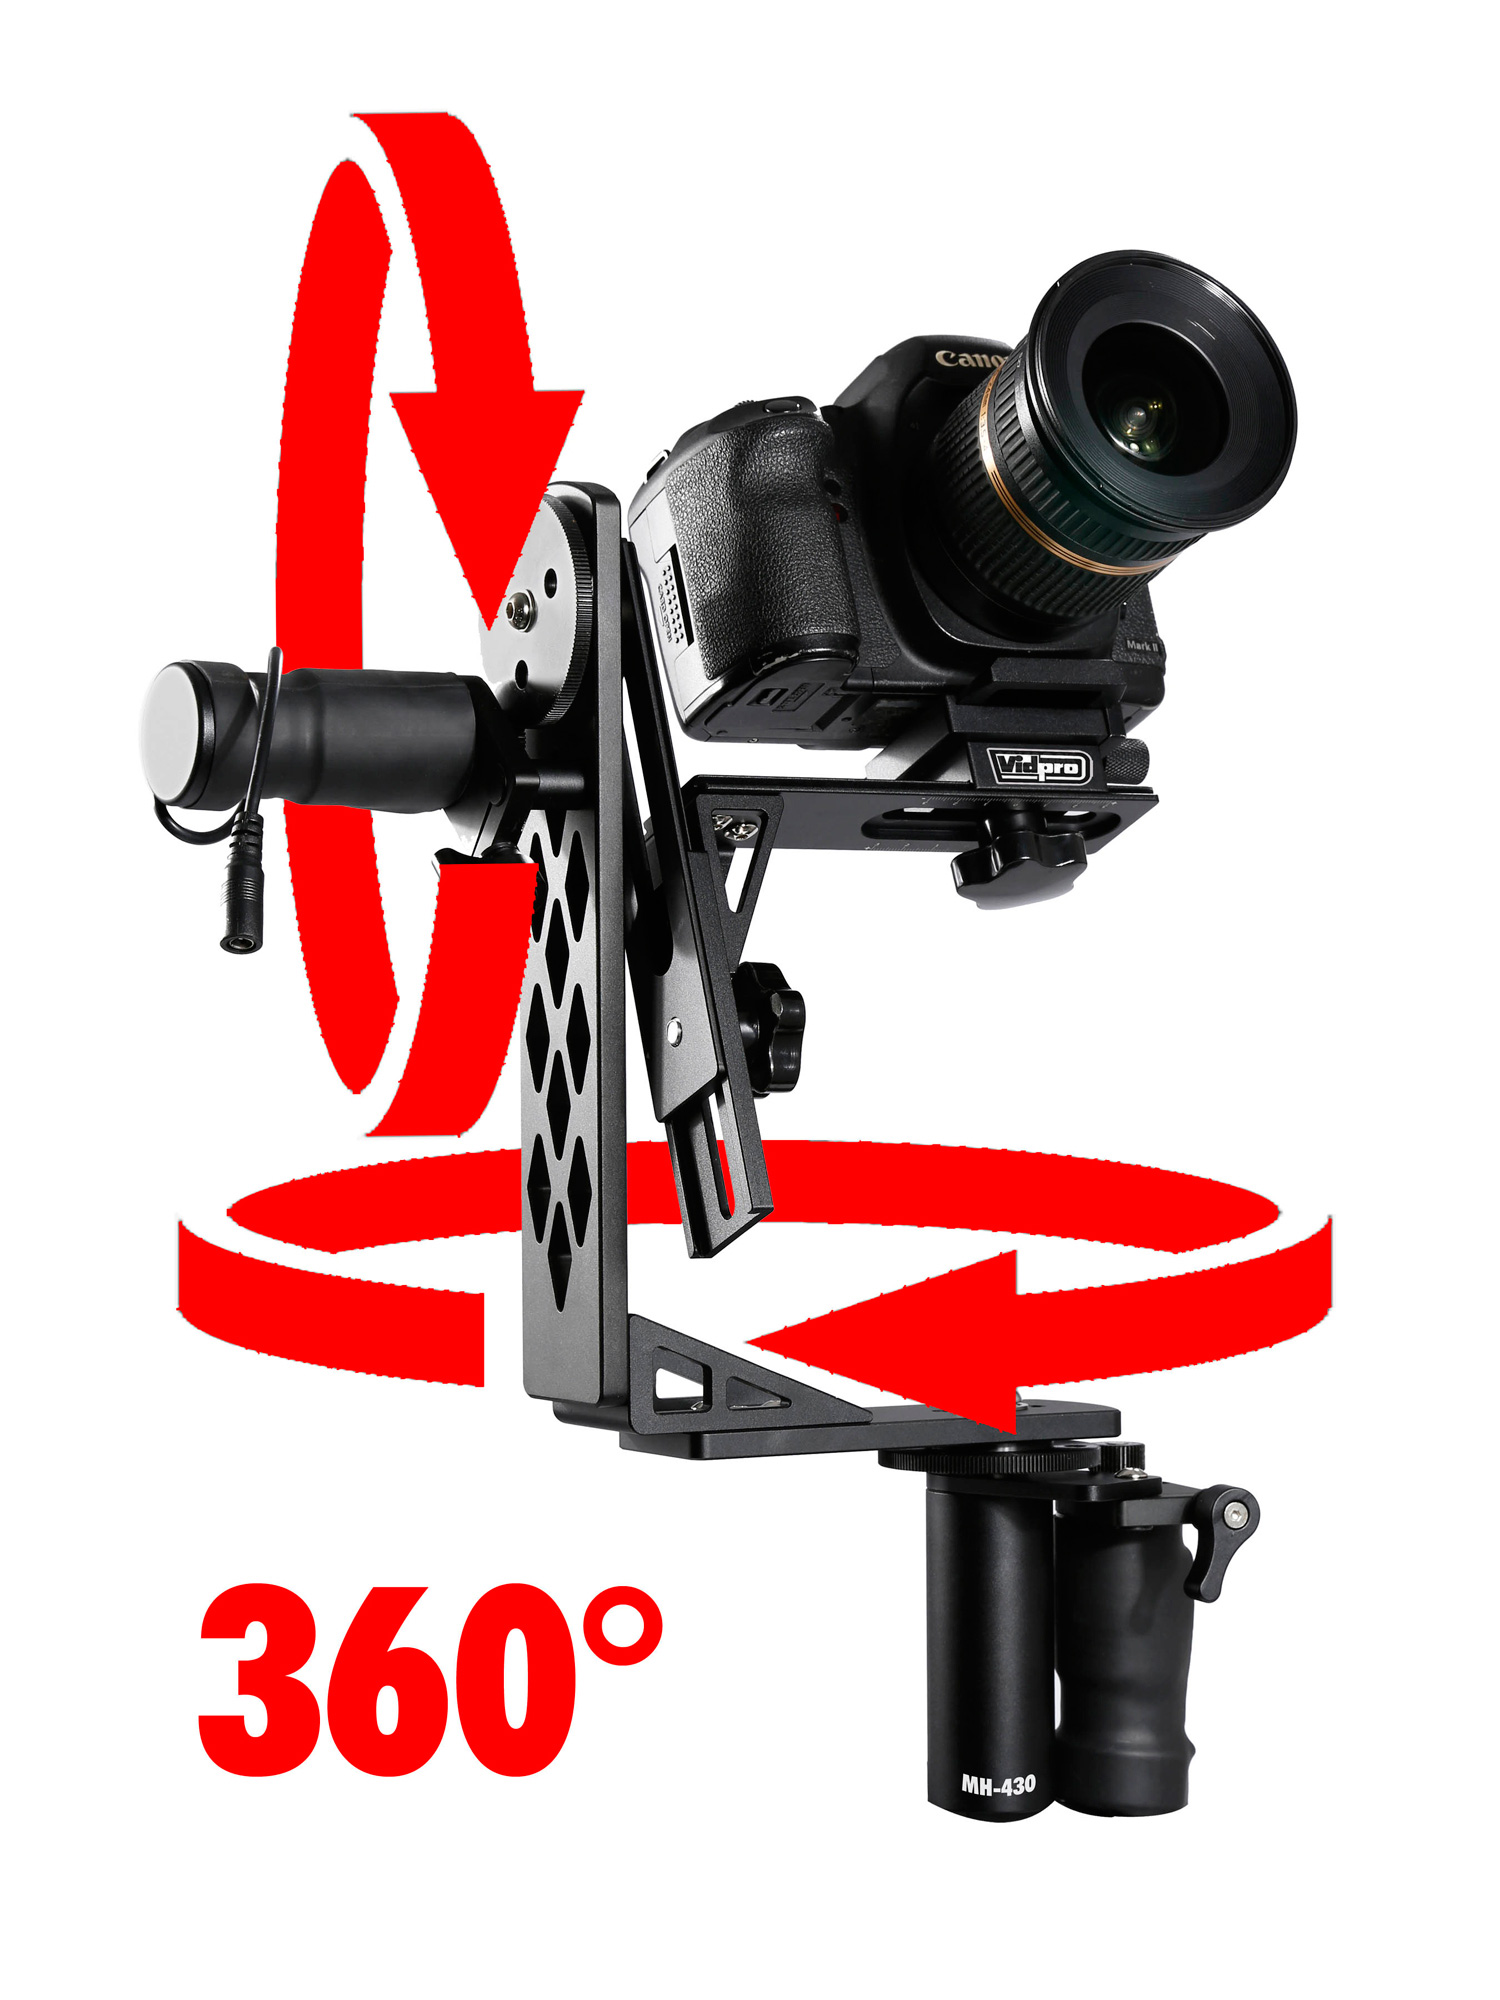 vidpro md 430 pro moterized pan and tilt gimbal head